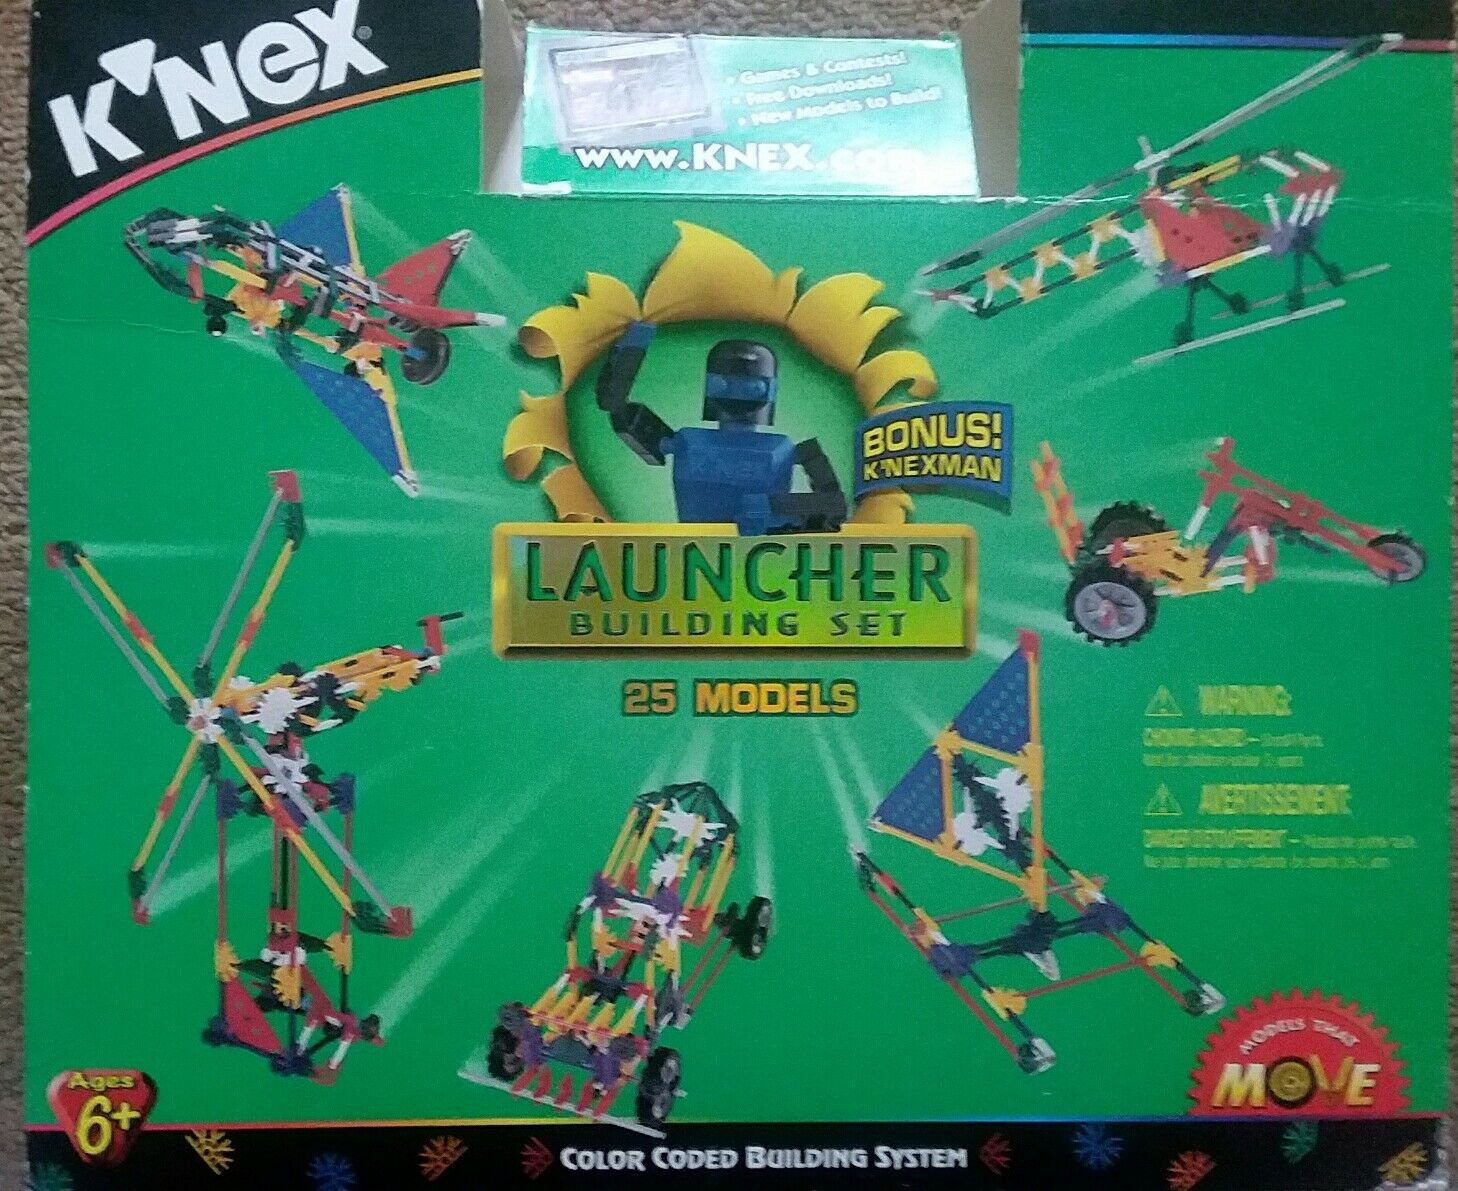 K'nex Millennium Edition Launcher Set Builds 25 Models 13043 Yellow Case Parts